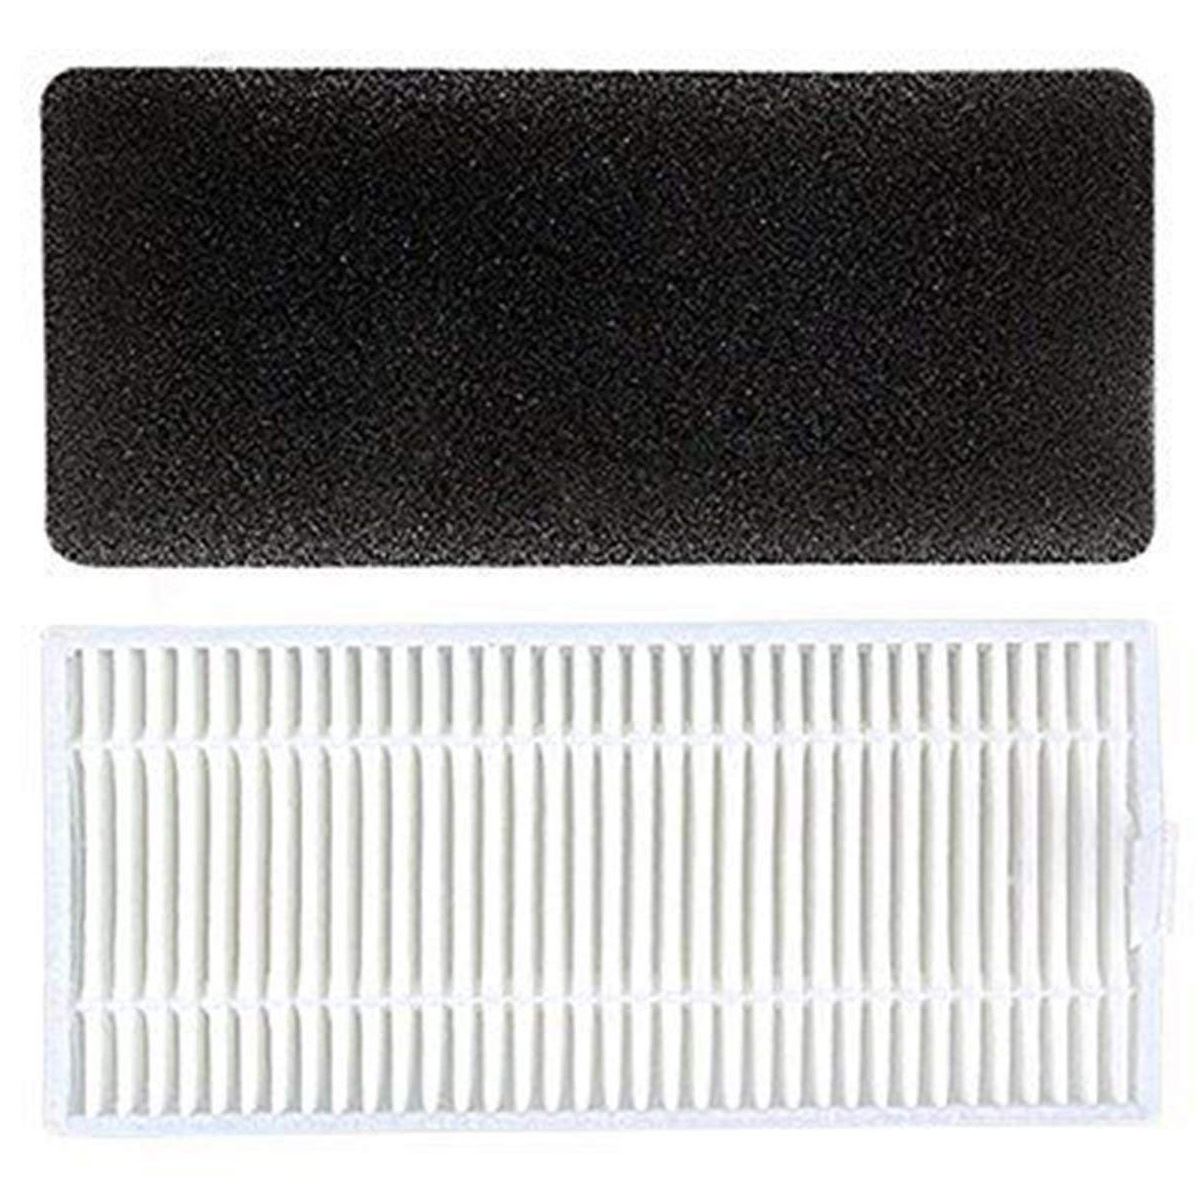 Replacement Filter and Side Brush Accessory Kit for Ecovacs DEEBOT N79 Robotic original l r side brush motor module assembly parts for ecovacs deebot cr130 cen640 component accessory